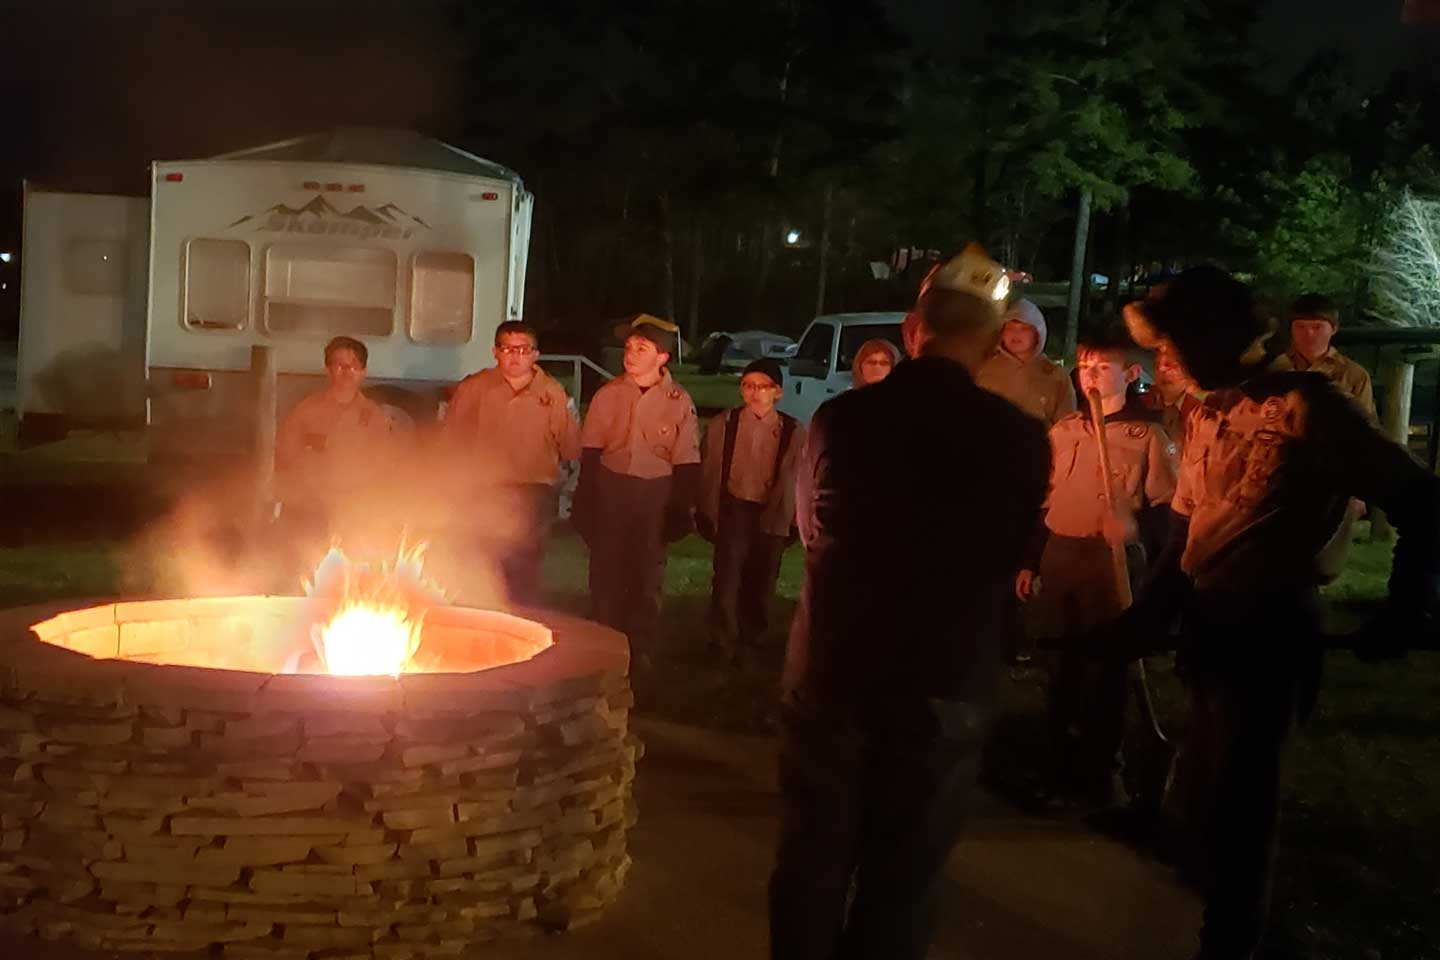 On Thursday March 14, 2019, Officers, and Auxiliary Members of Veterans of Foreign Wars Post 7402 were joined by members of Boy Scout Troop 353 {Powder Springs. GA.} and Troop 23{Rockmart, GA.} ceremoniously retiring 75 United States of American flags.